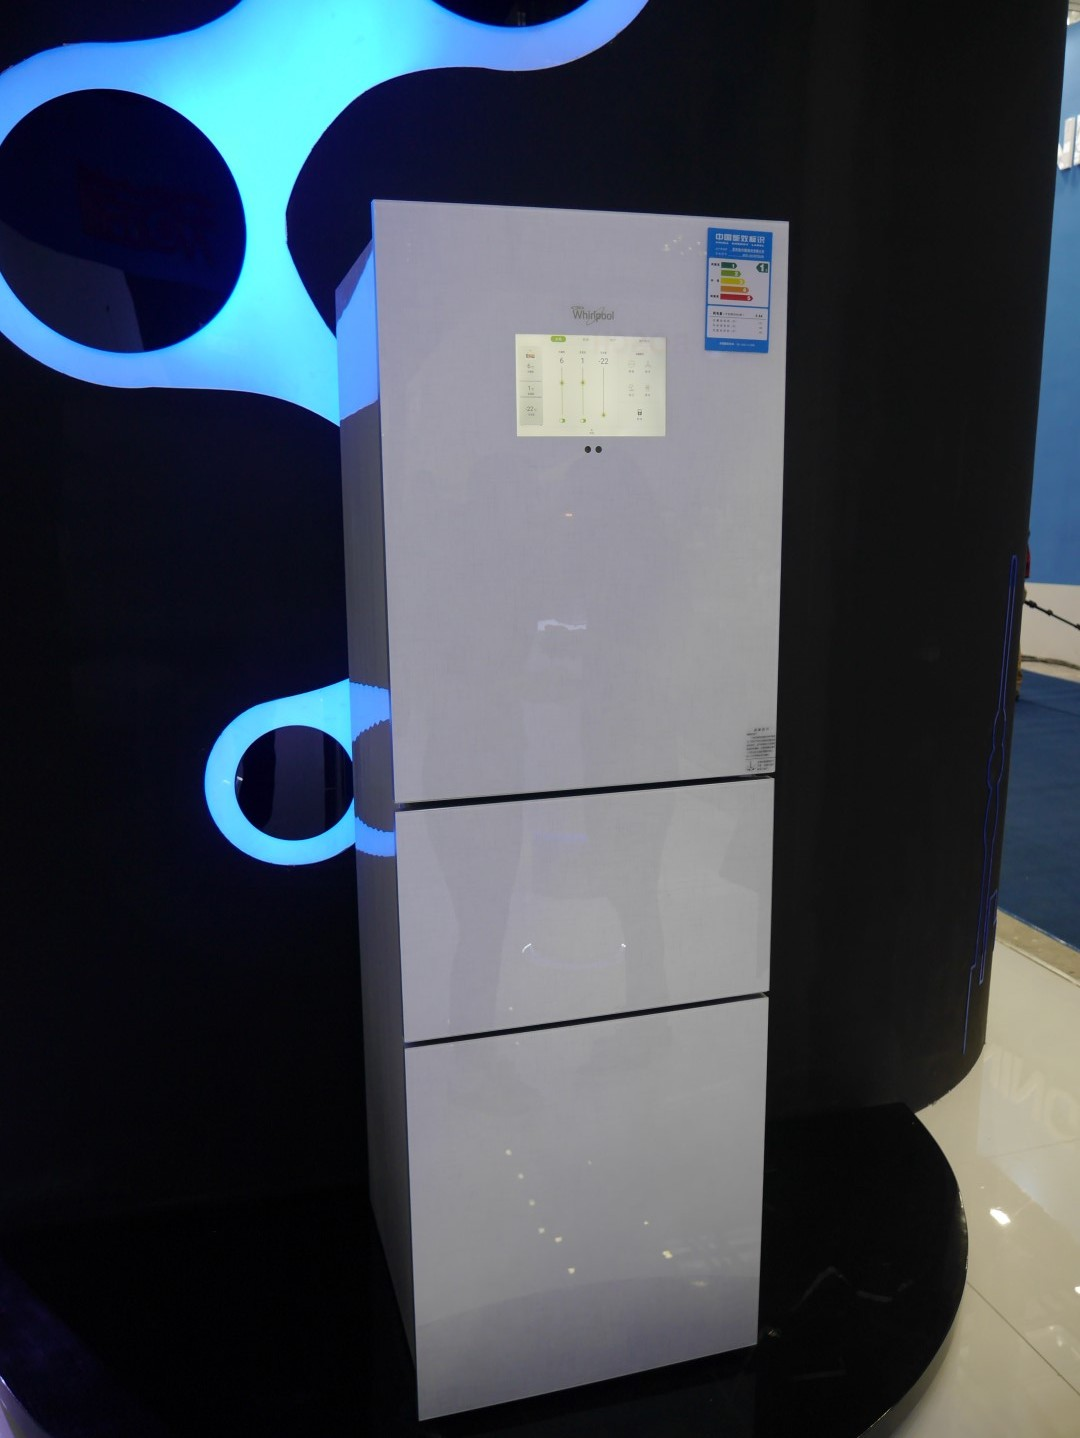 whirpool smart fridge (9)